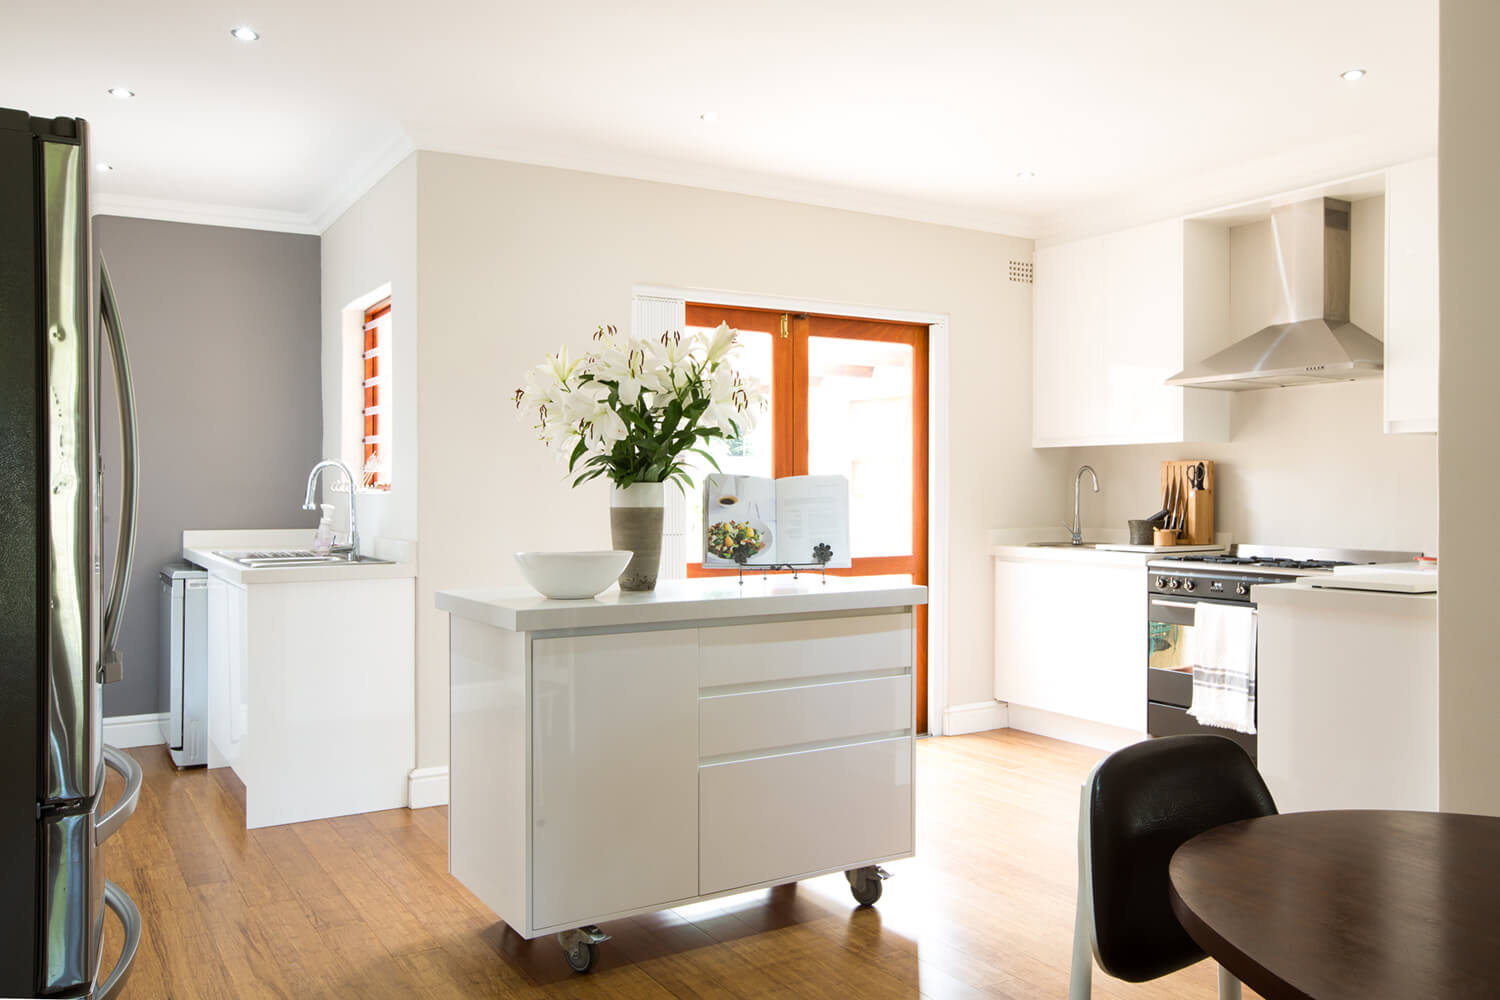 Kitchens Cupboards, Designs & Renovation Cape Town - Essential Kitchens